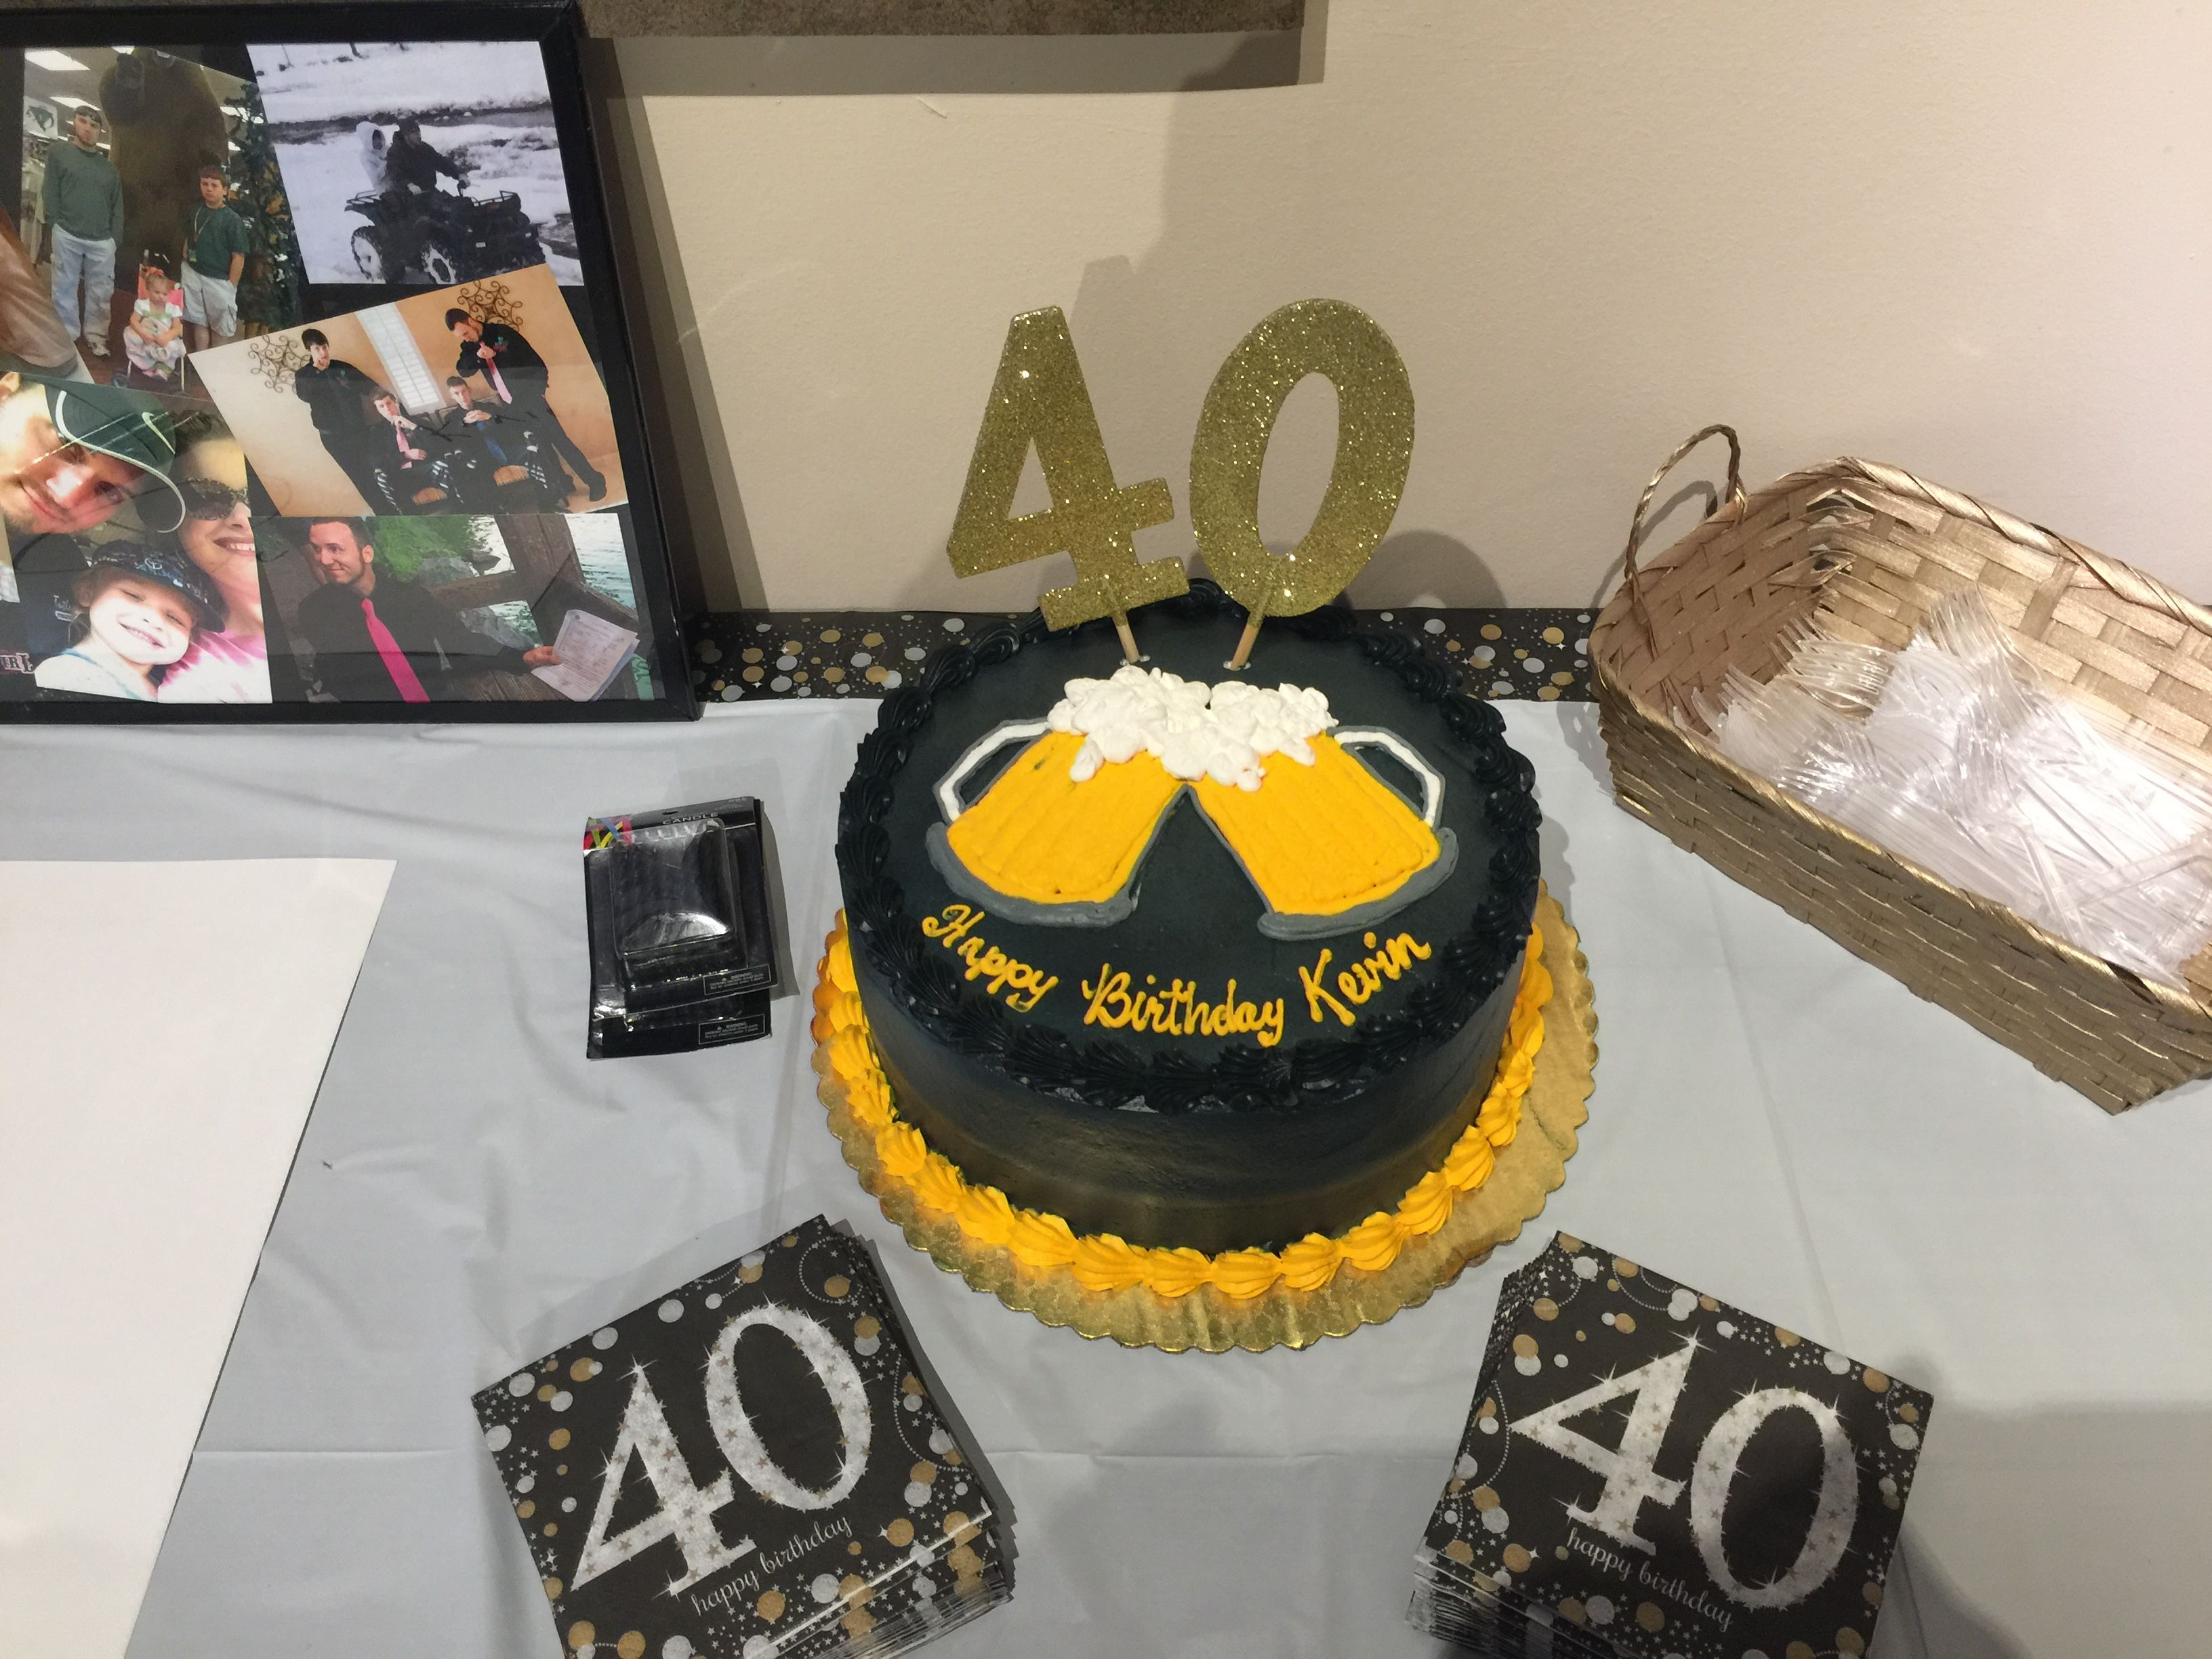 Cheers and beers to 40 years cake Birthday party ideas adults